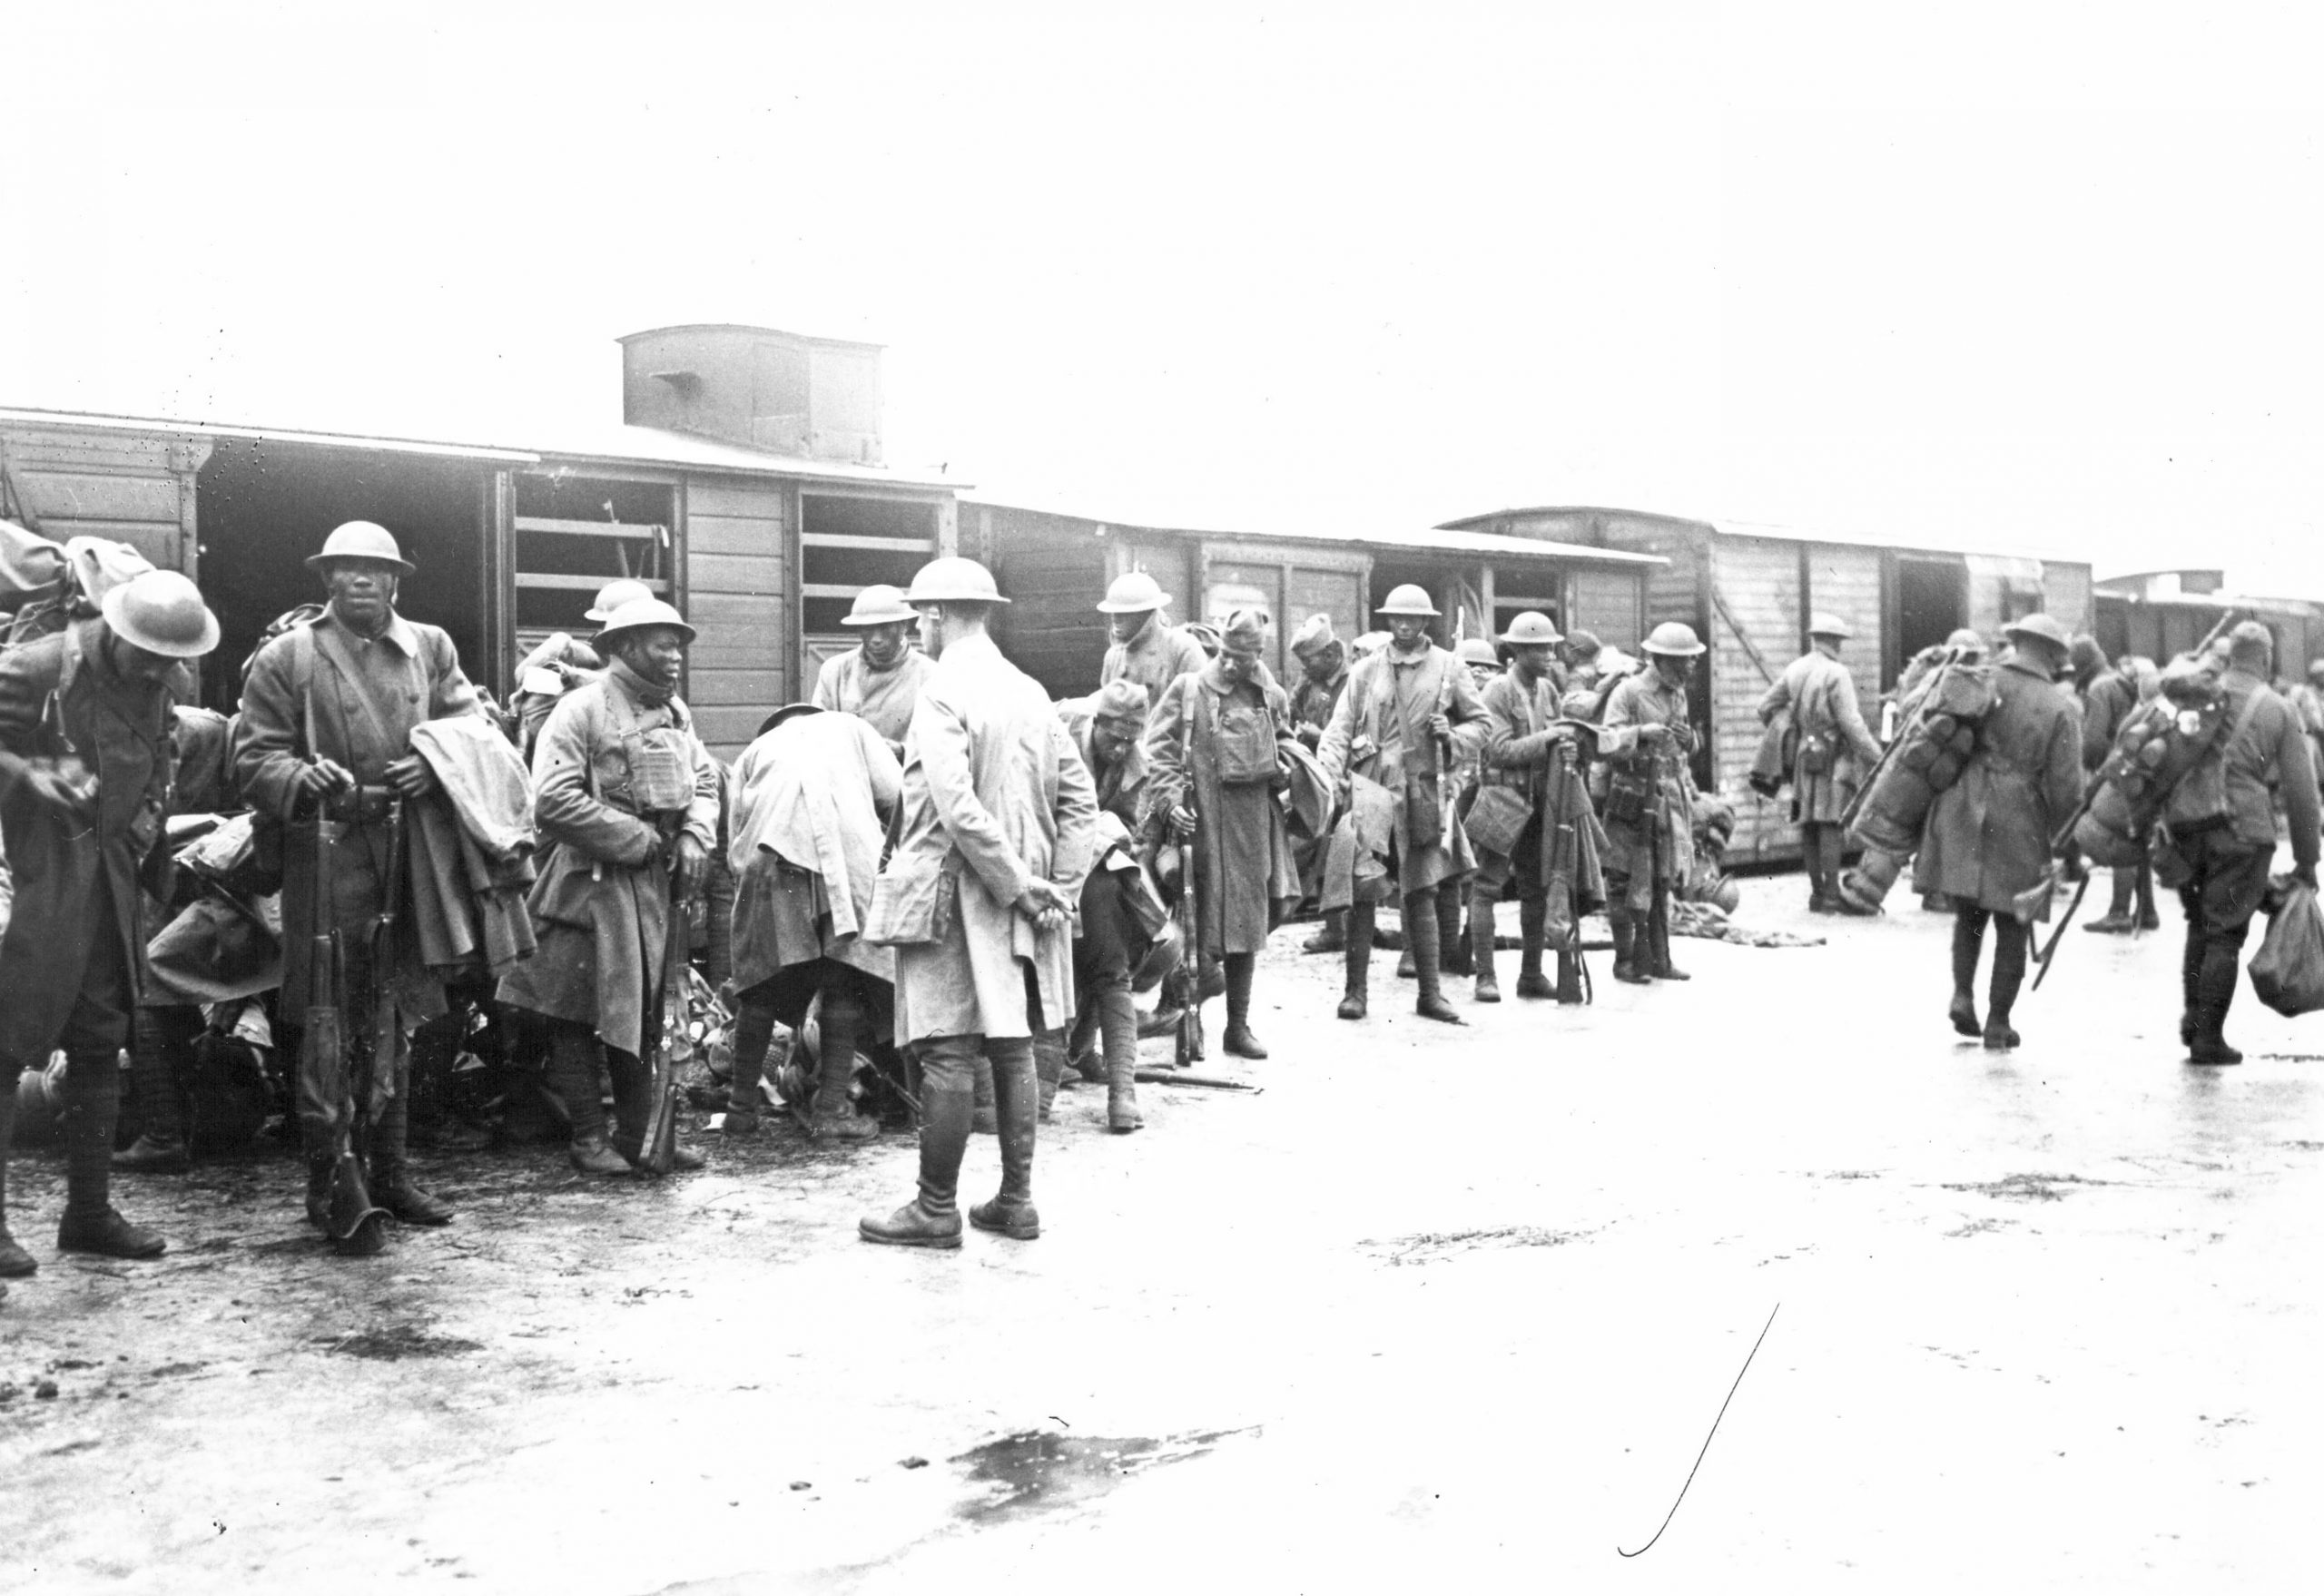 The 369th Regiment travelling in France